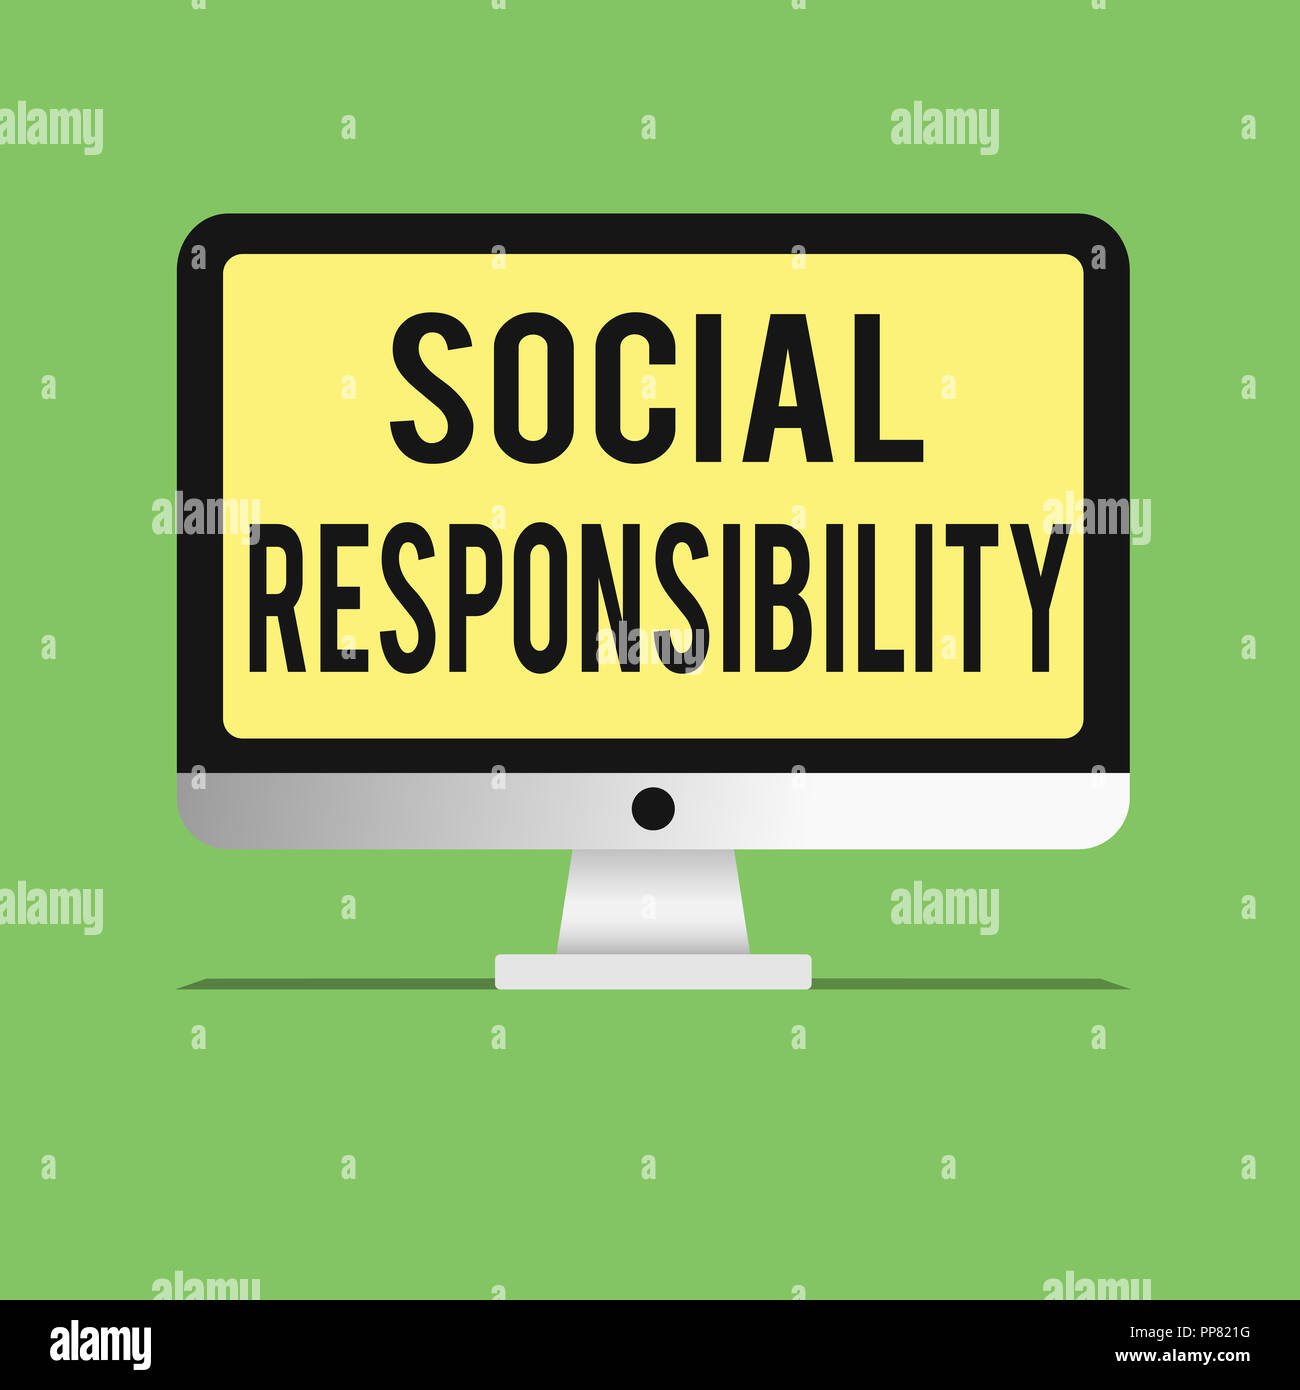 social responsibility of business towards society